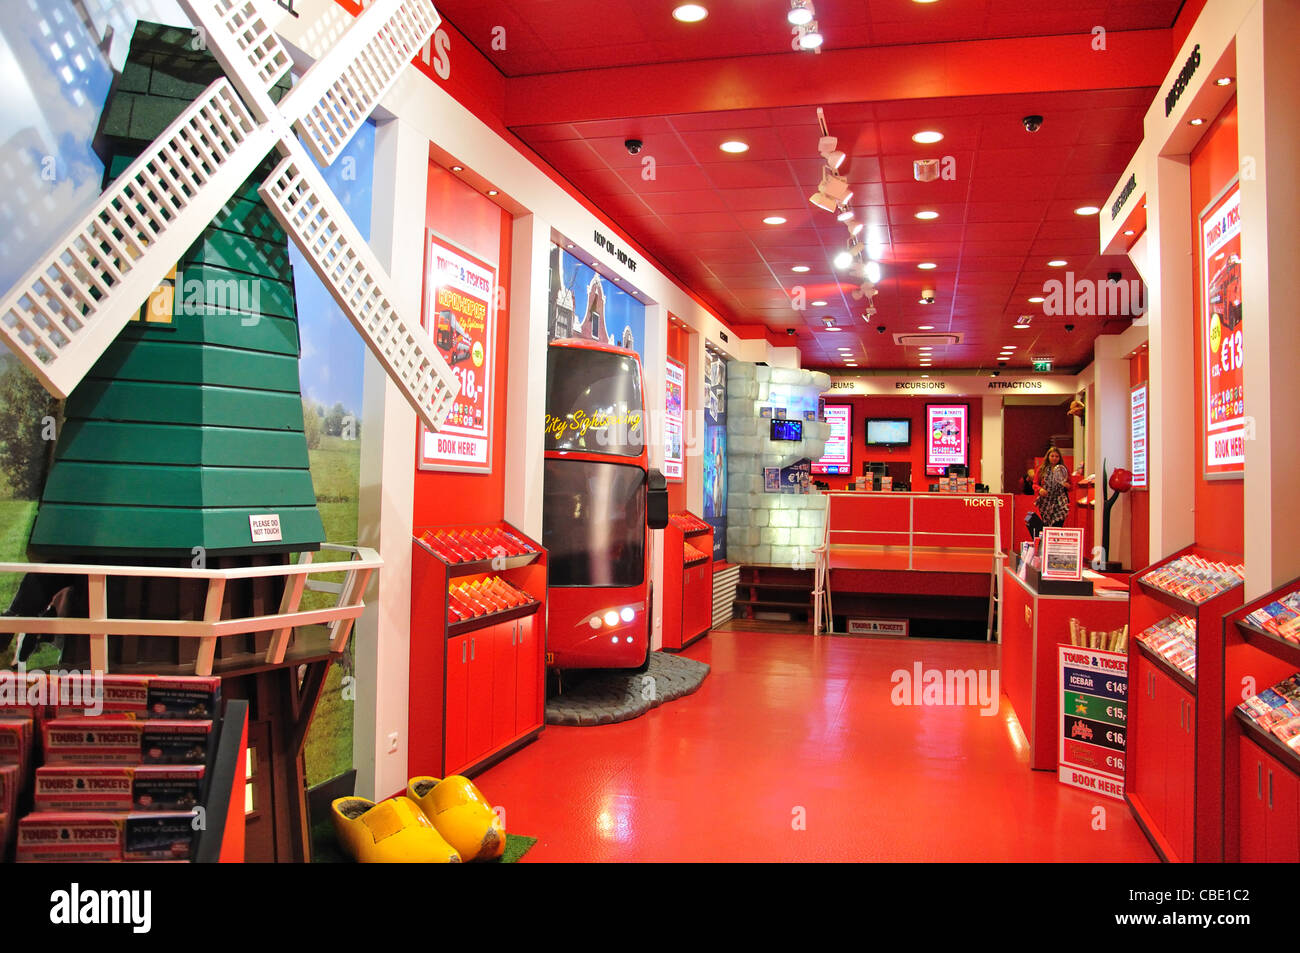 'Tours and Tickets' agency, Damrak, Amsterdam, Noord-Holland, Kingdom of the Netherlands - Stock Image